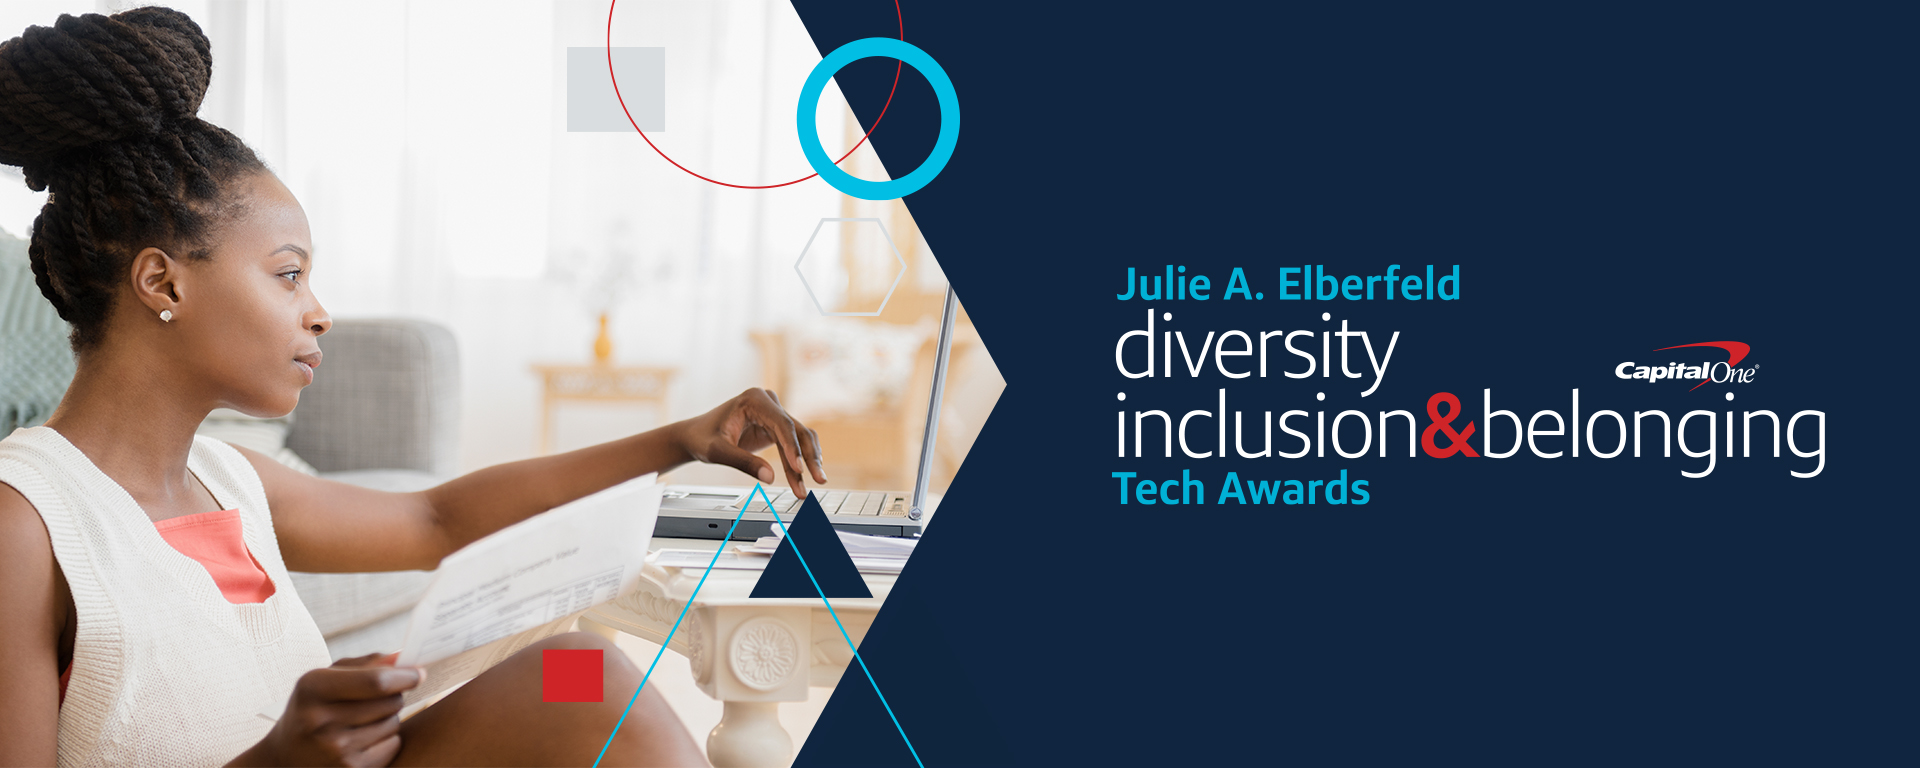 Woman sits at laptop and talks about the Julie A. Elberfeld Tech Diversity and Inclusion awards at Capital One